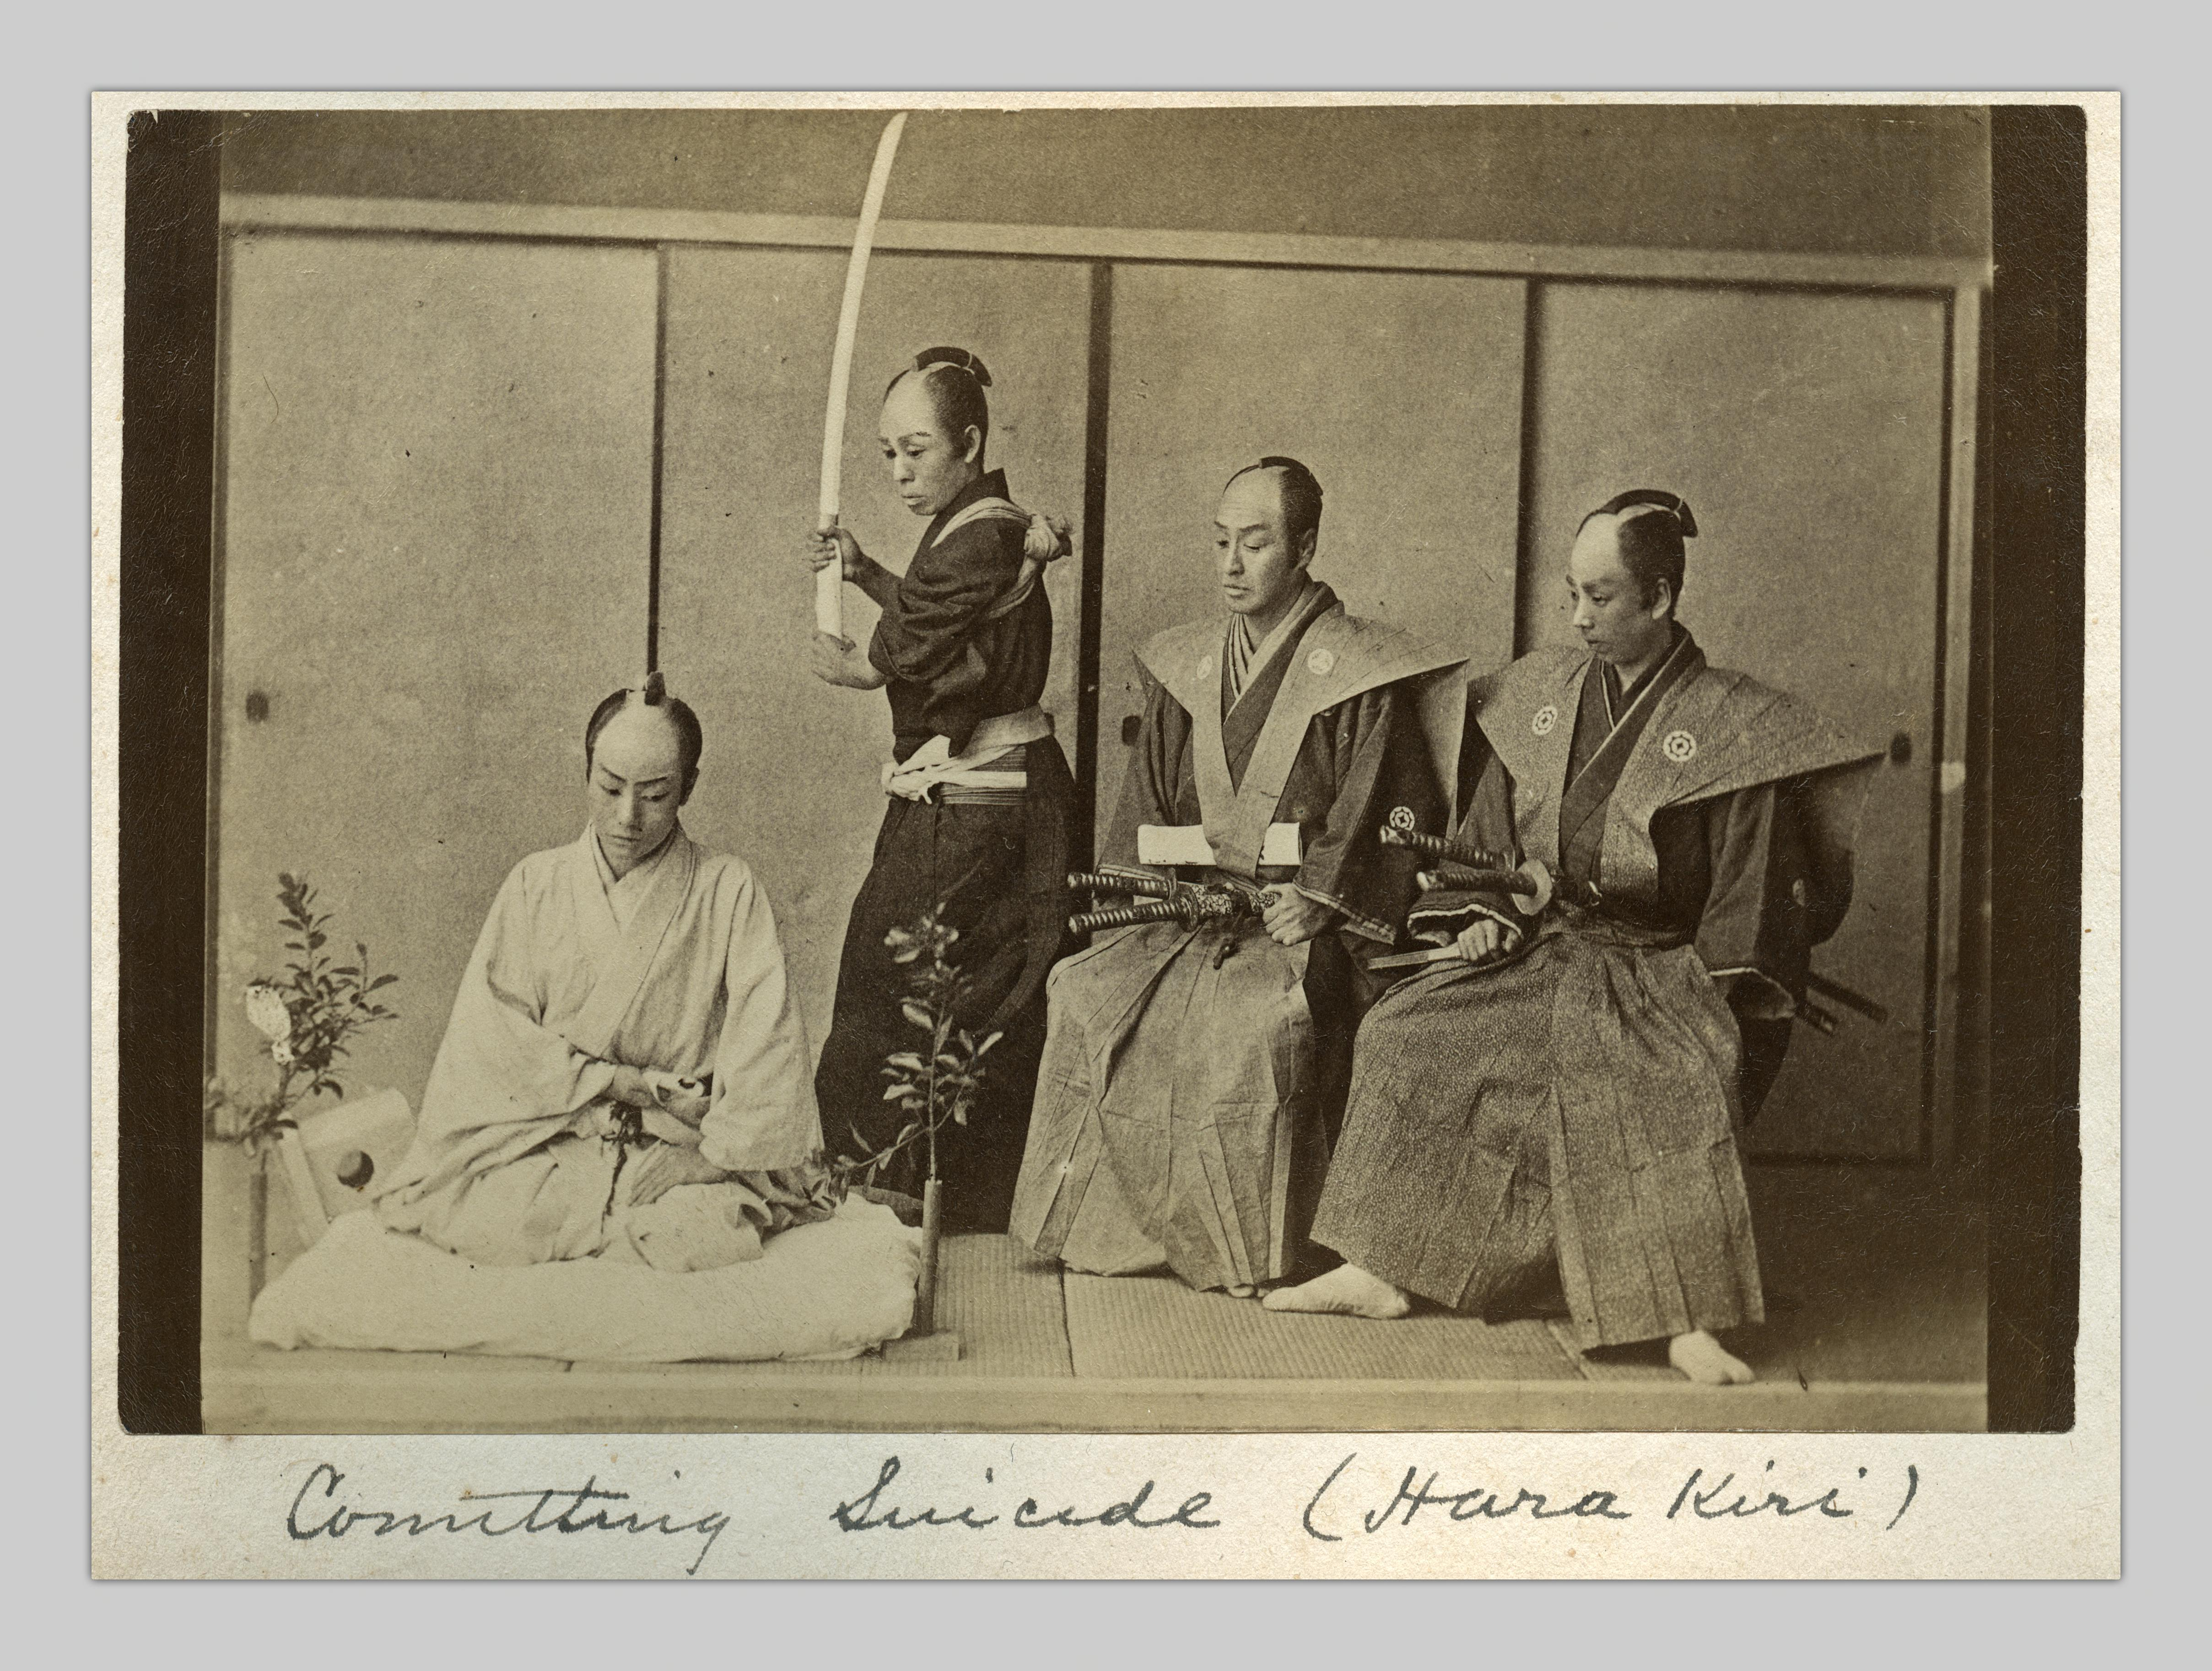 """A photograph by Ogawa Kazumasa entitled """"Committing Suicide (hara kiri)."""" In the photo, two official-looking man with sheathed swords are sitting to the right of two other figures, one standing with sword pointed upwards at the ready and the other seated on a cushion, looking downcast."""